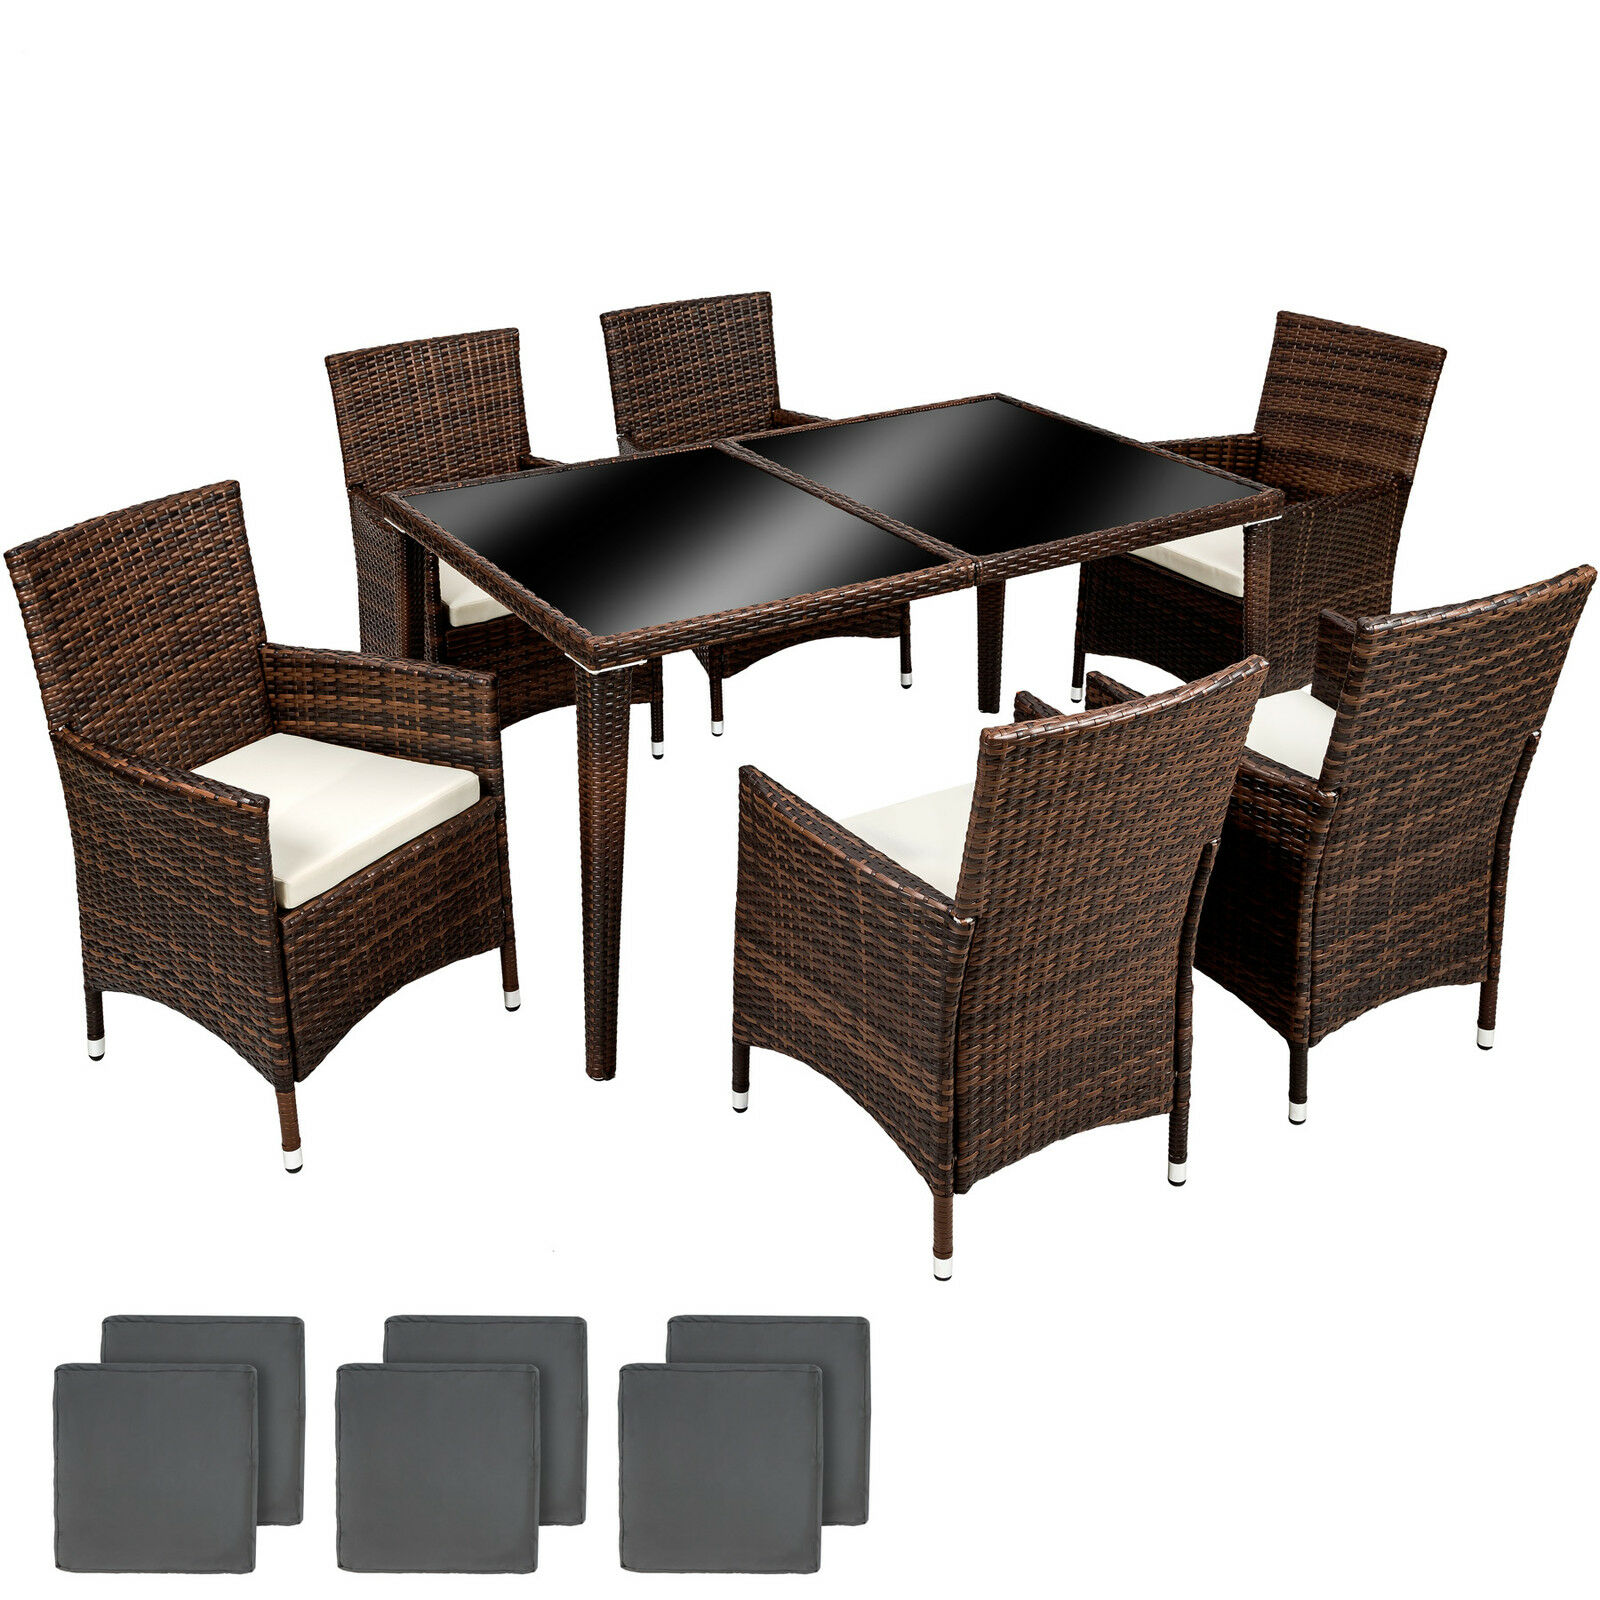 poly rattan alu gartenm bel essgruppe sitzgruppe gartengarnitur essgruppe braun eur 339 99. Black Bedroom Furniture Sets. Home Design Ideas